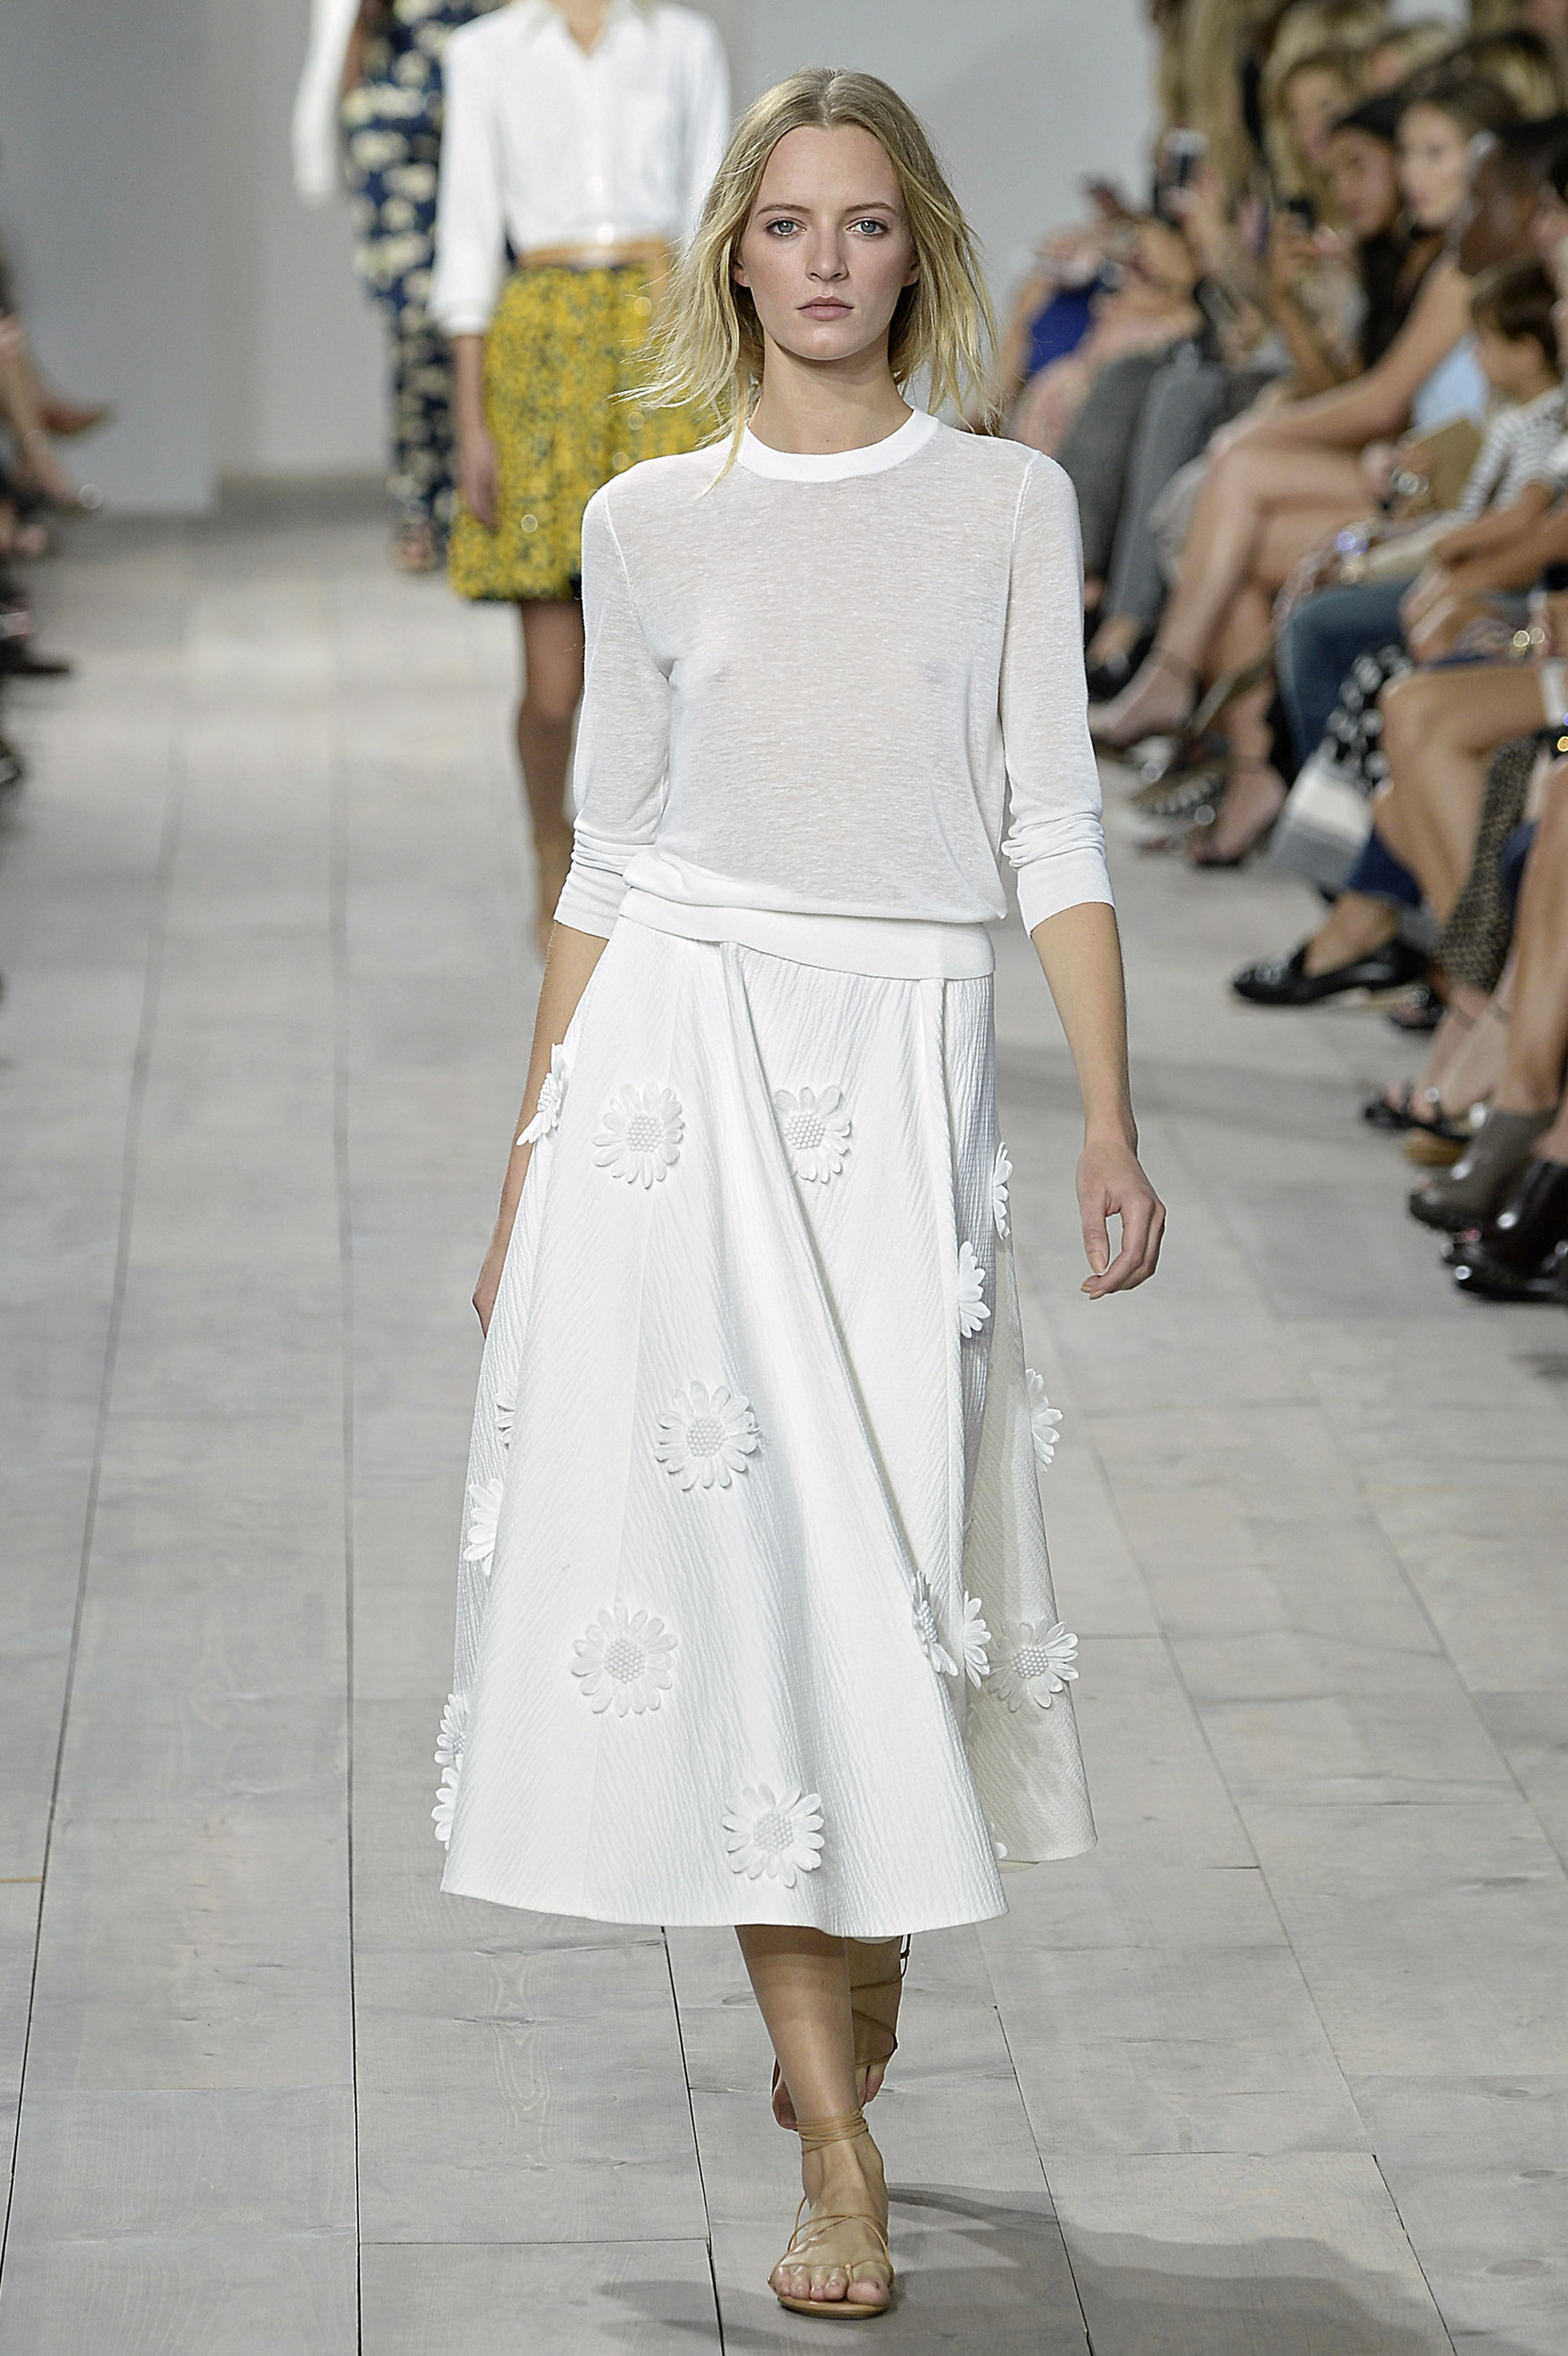 New York Fashion Week: Michael Kors Spring/Summer 2015